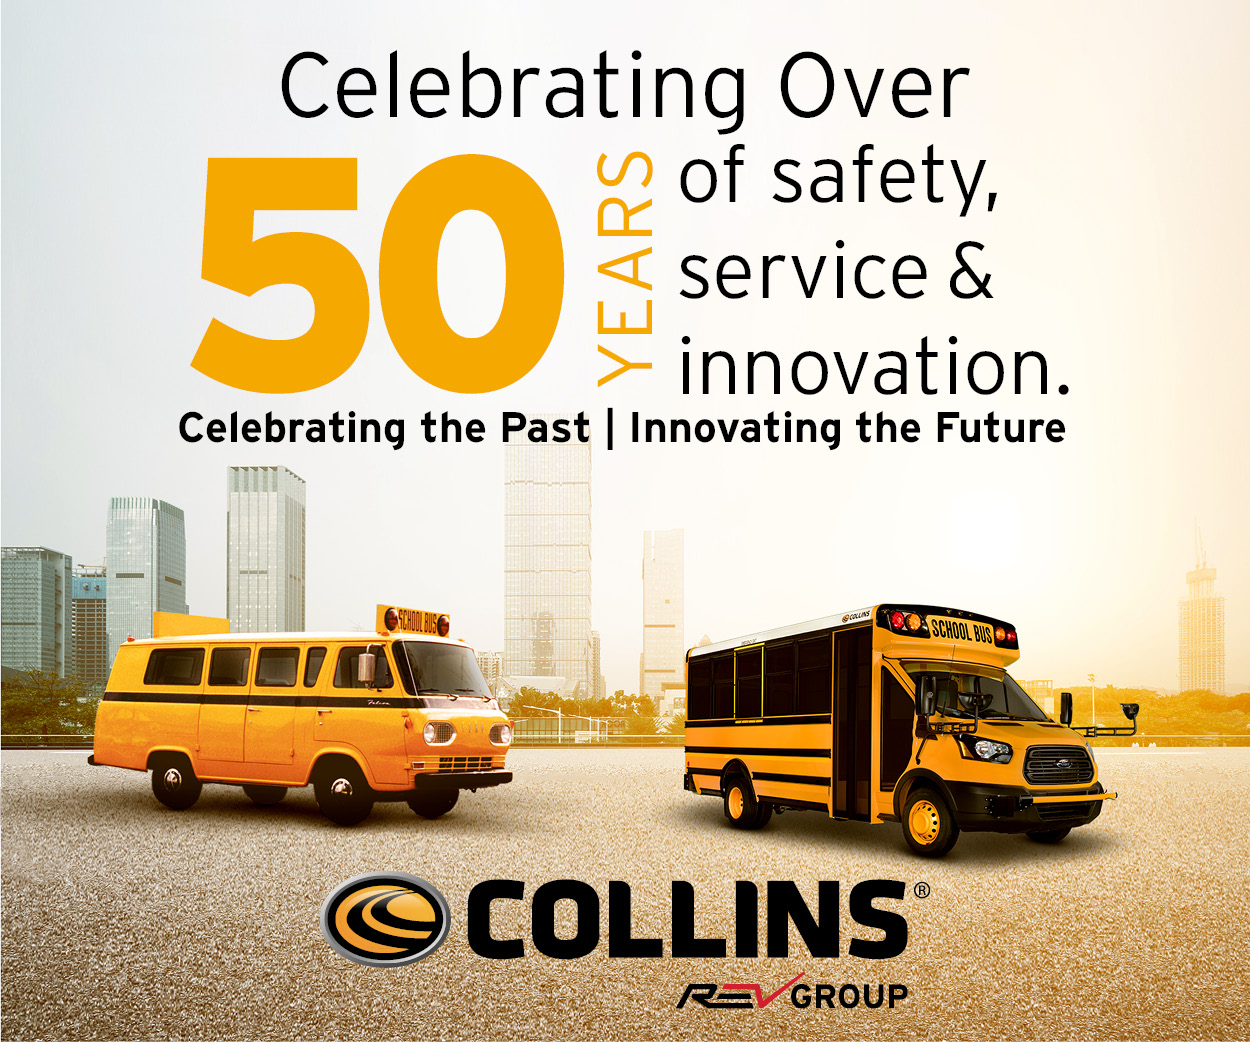 collins_ad Image